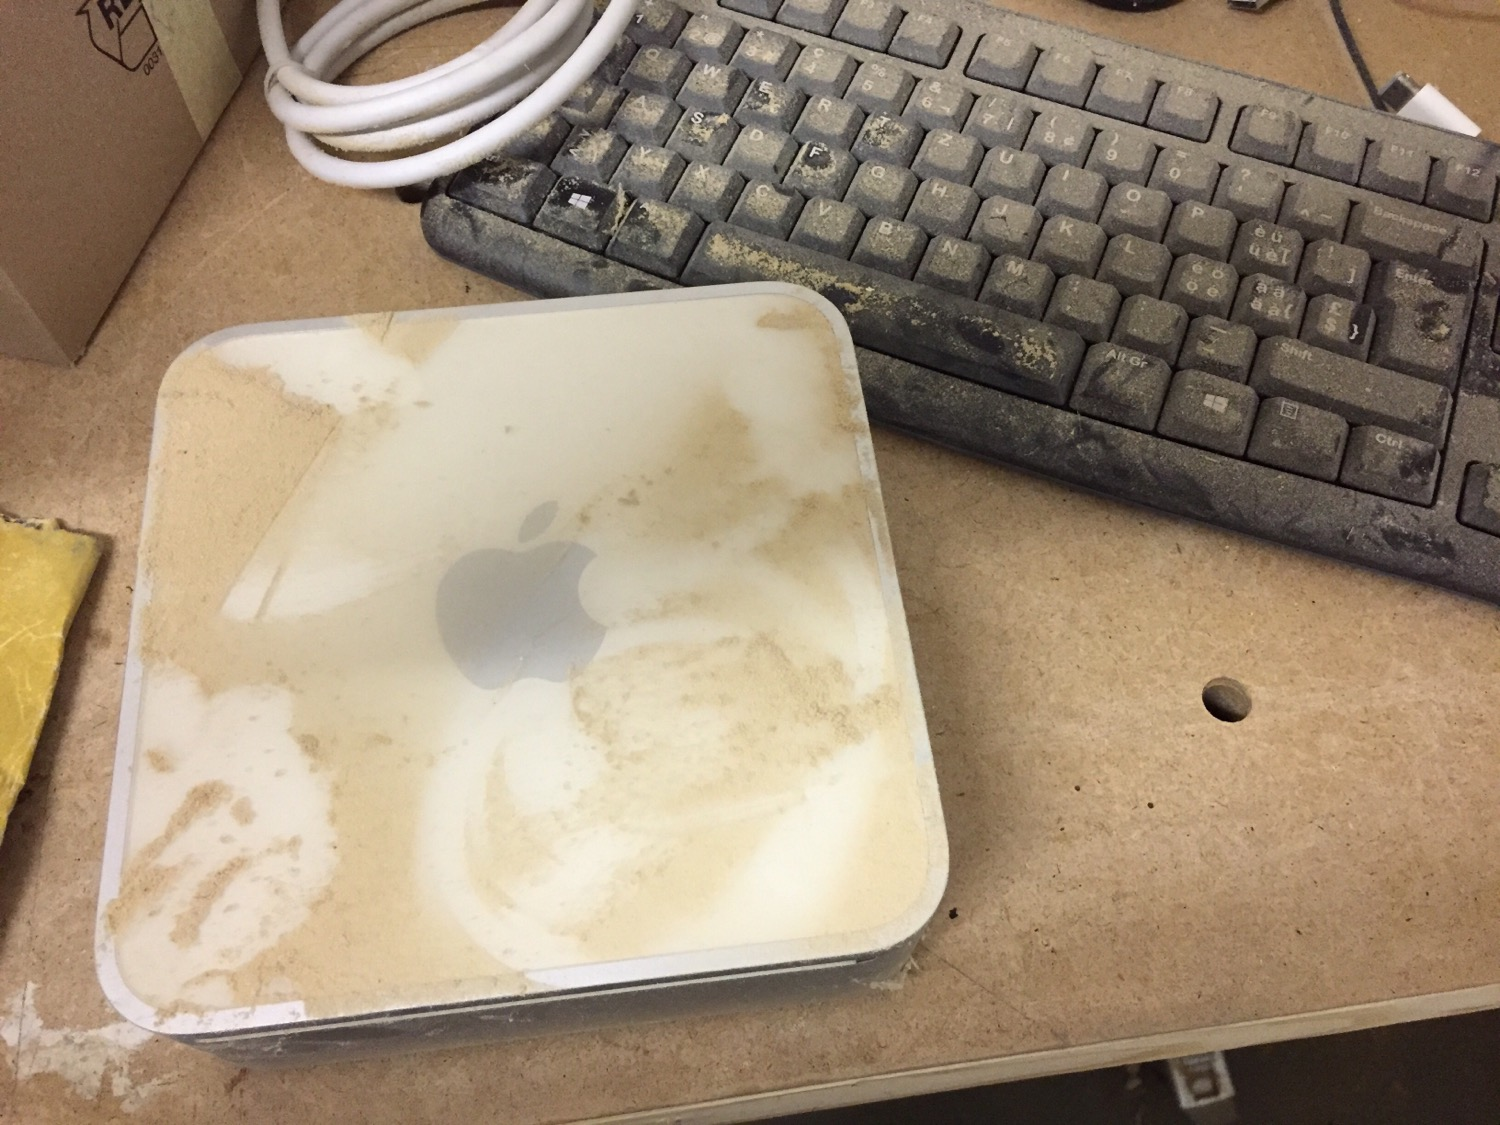 This Mac Mini spent to much time in my woodshop.